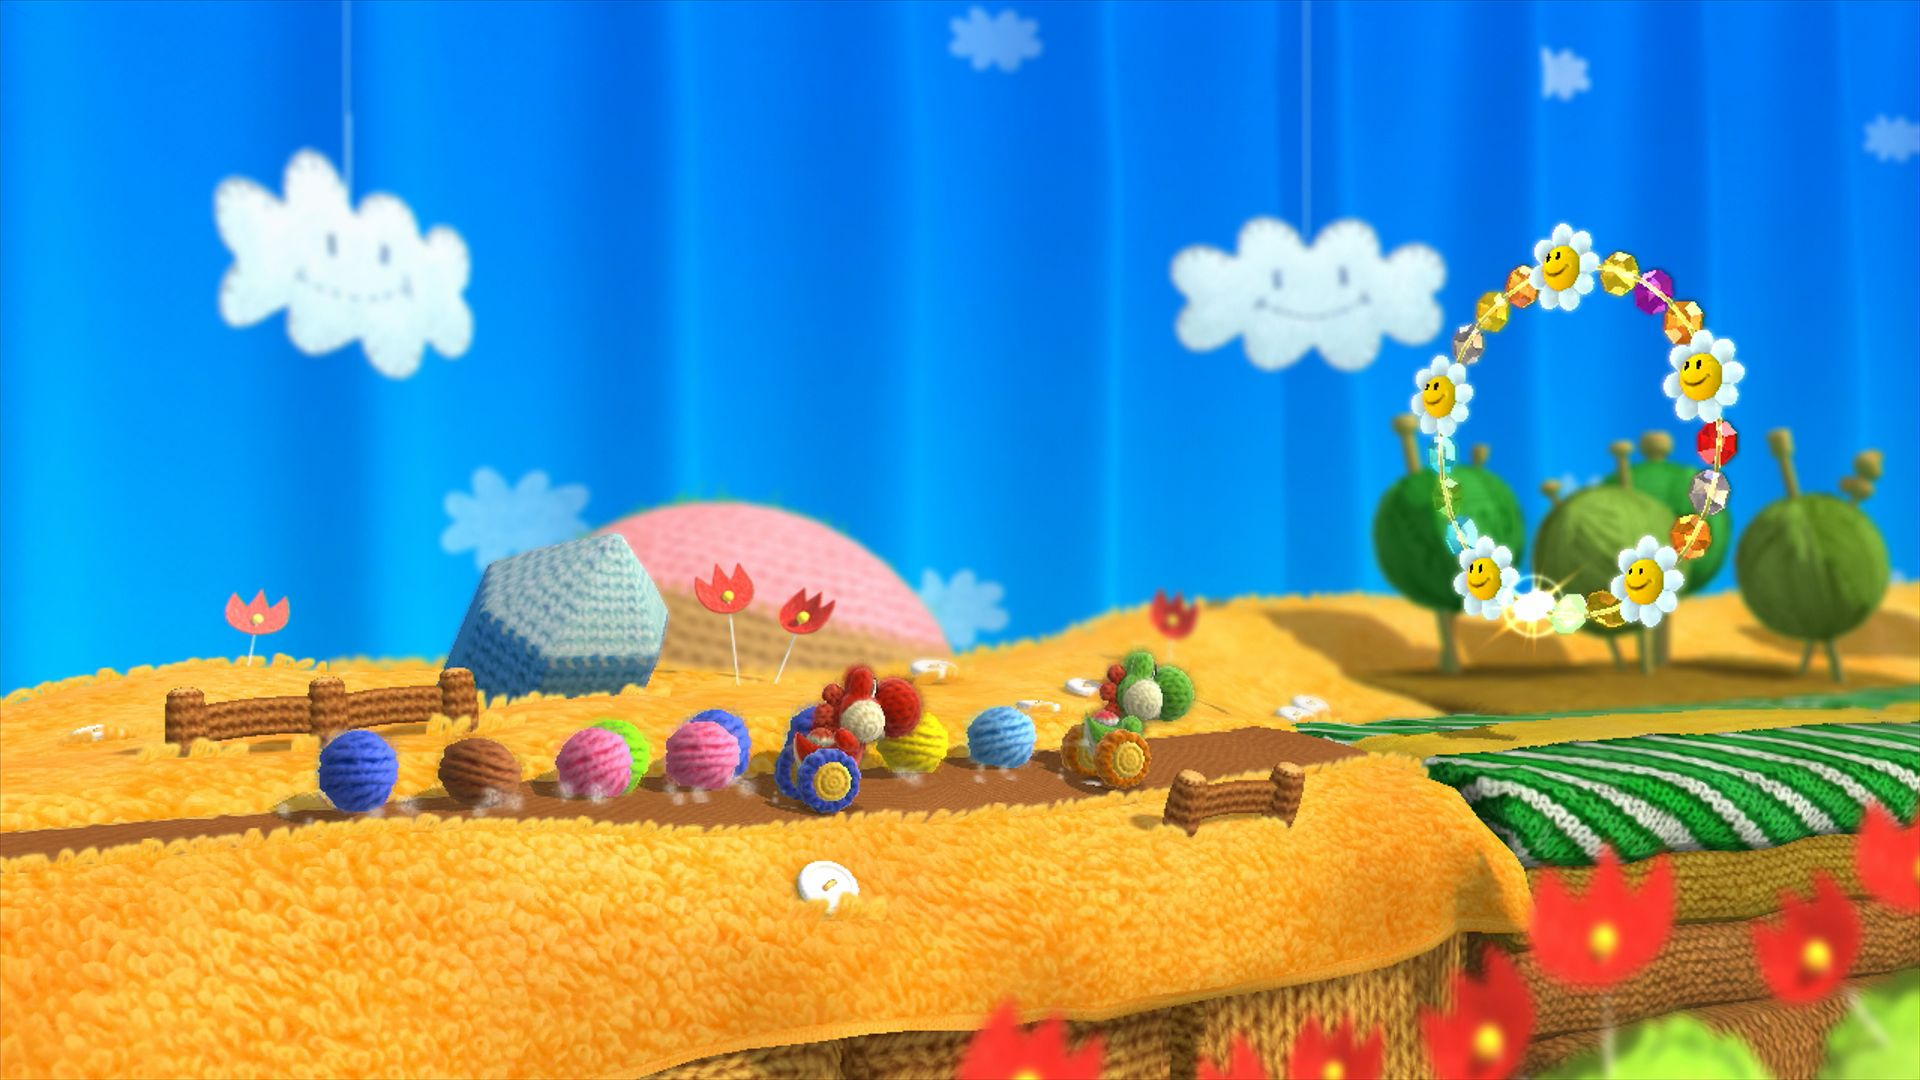 yoshis woolly world 11062014 6